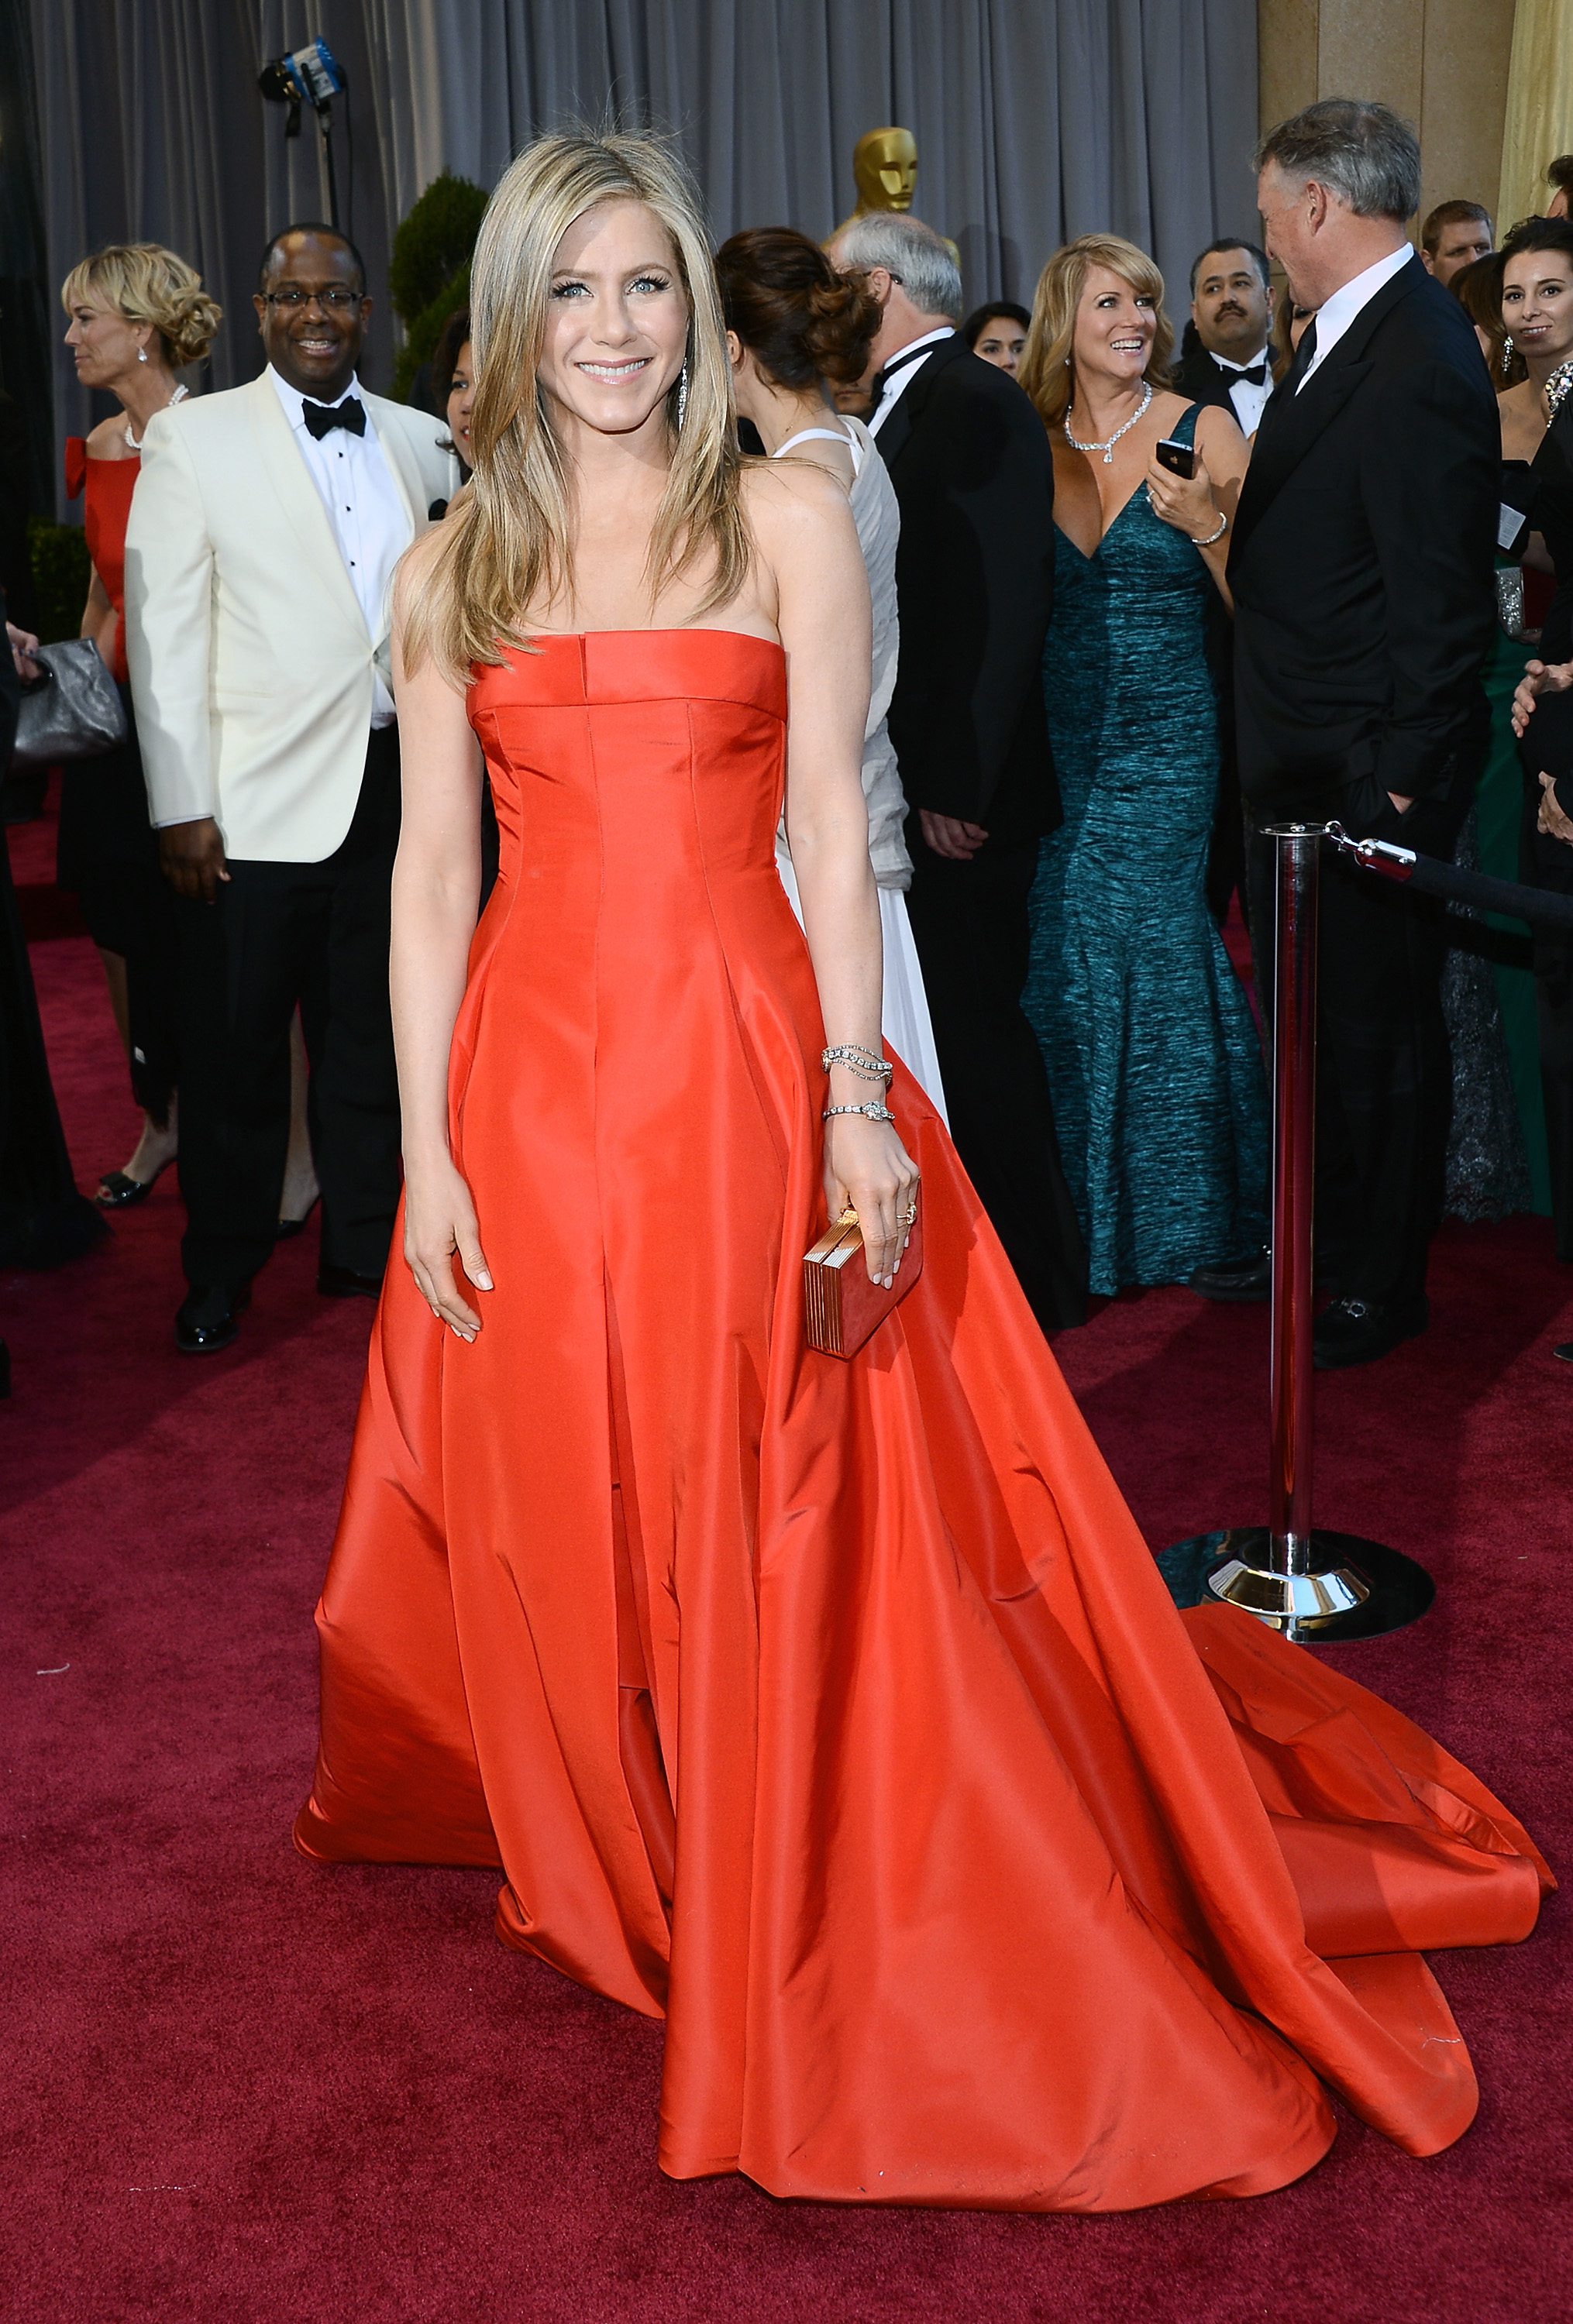 Jennifer Aniston on the red carpet at the Oscars 2013.